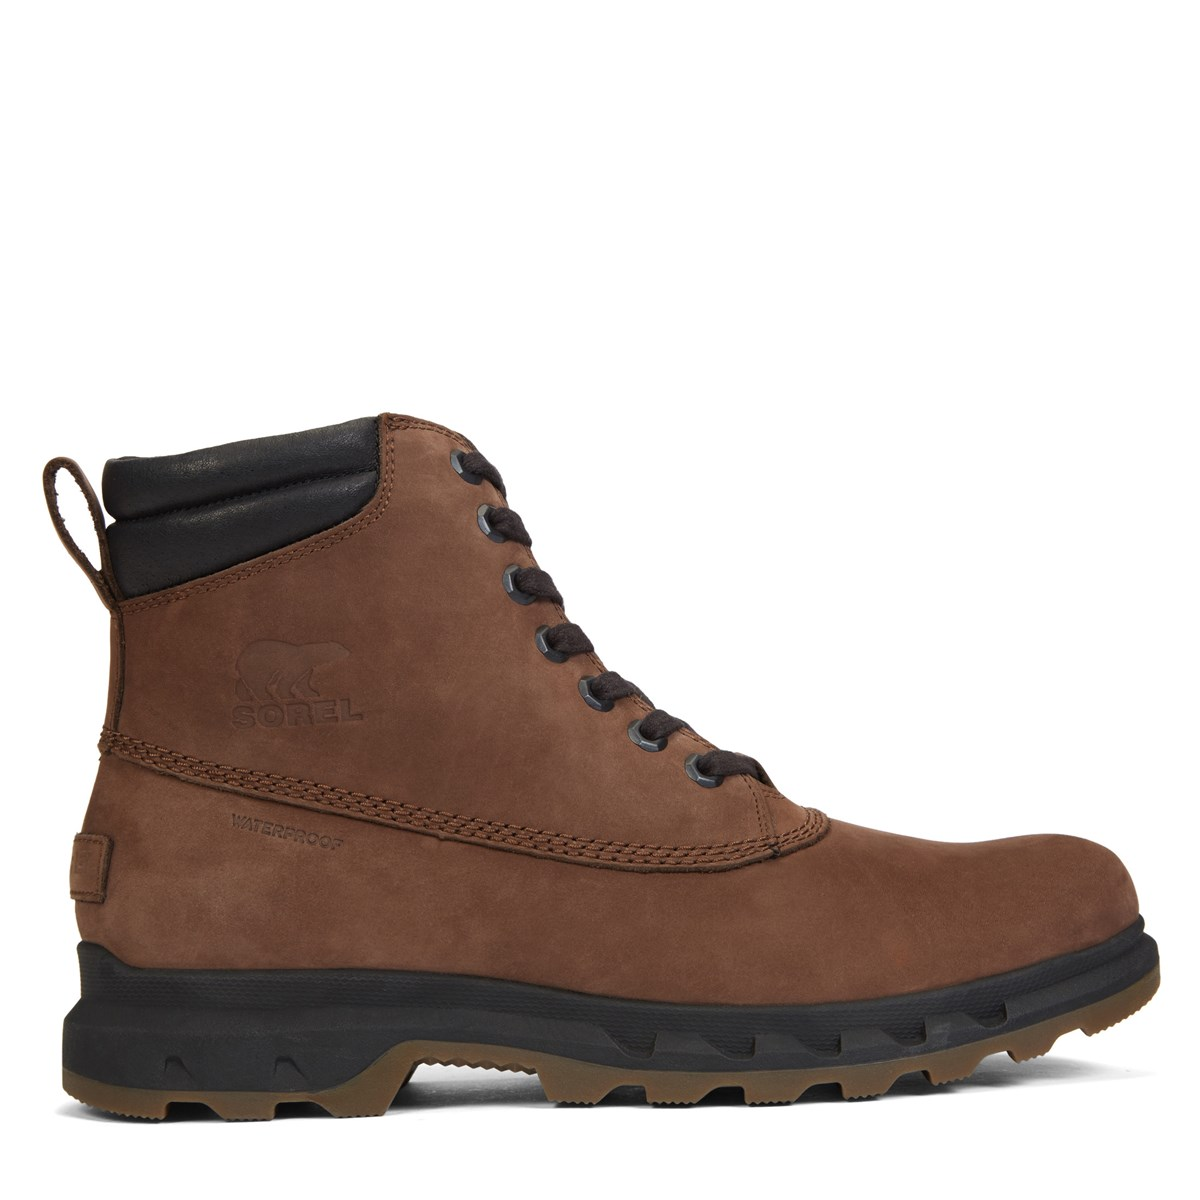 Men's Portzman Lace Boots in Brown